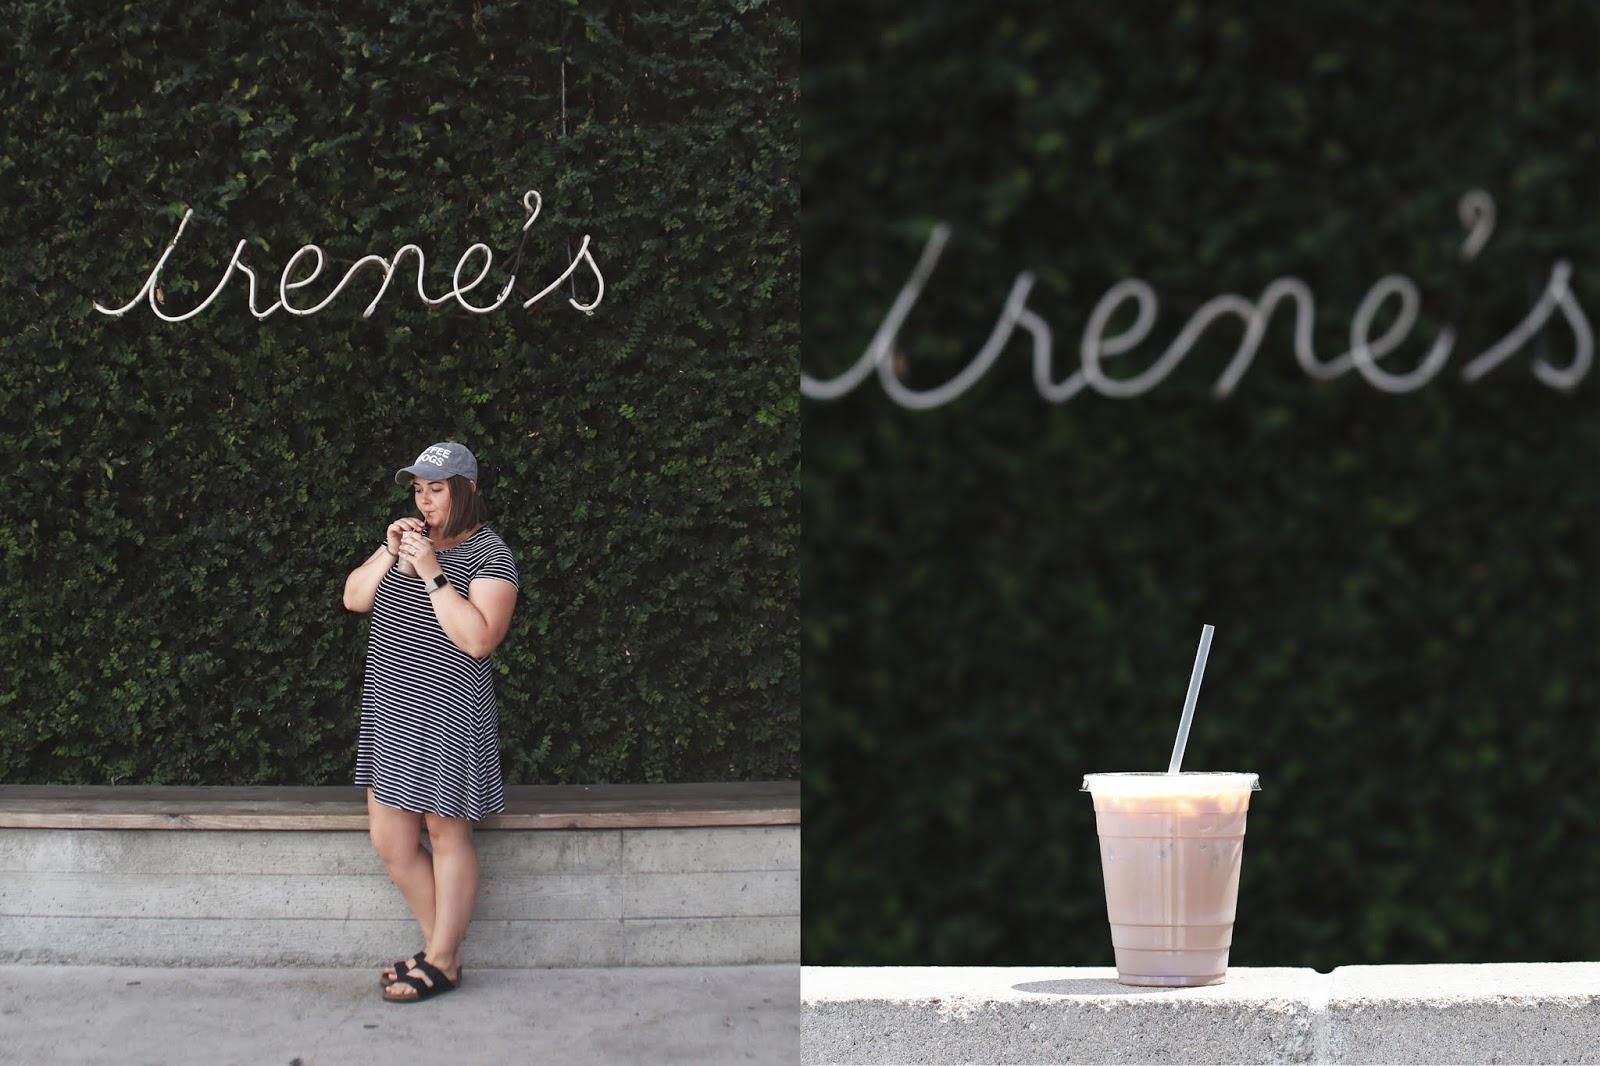 Irene's Austin, Iced Coffee, Cozy Coffee Shop, Coffee Shops Vibe